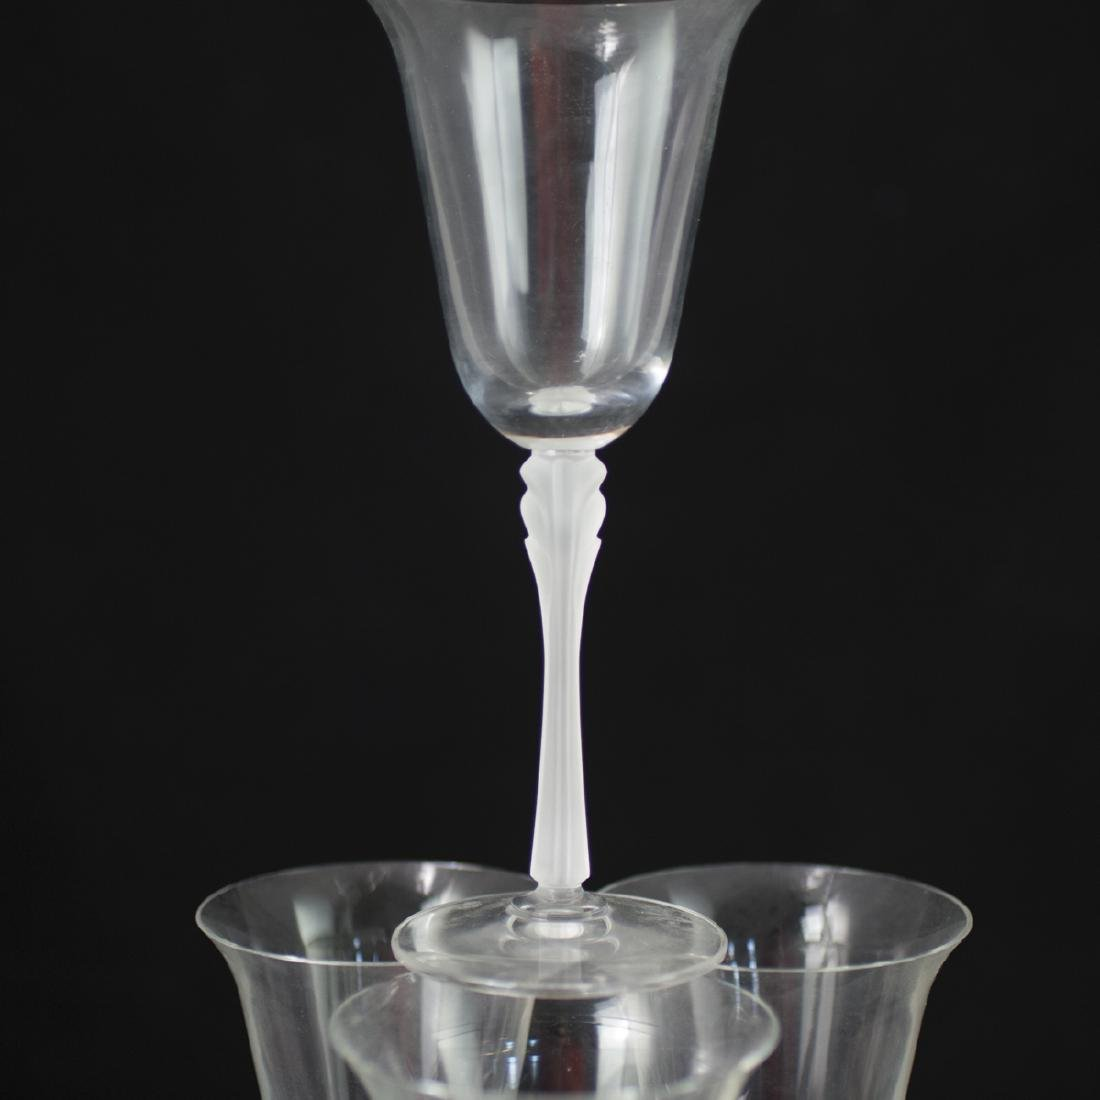 Lalique Style Frosted Crystal Wine Glasses - 4